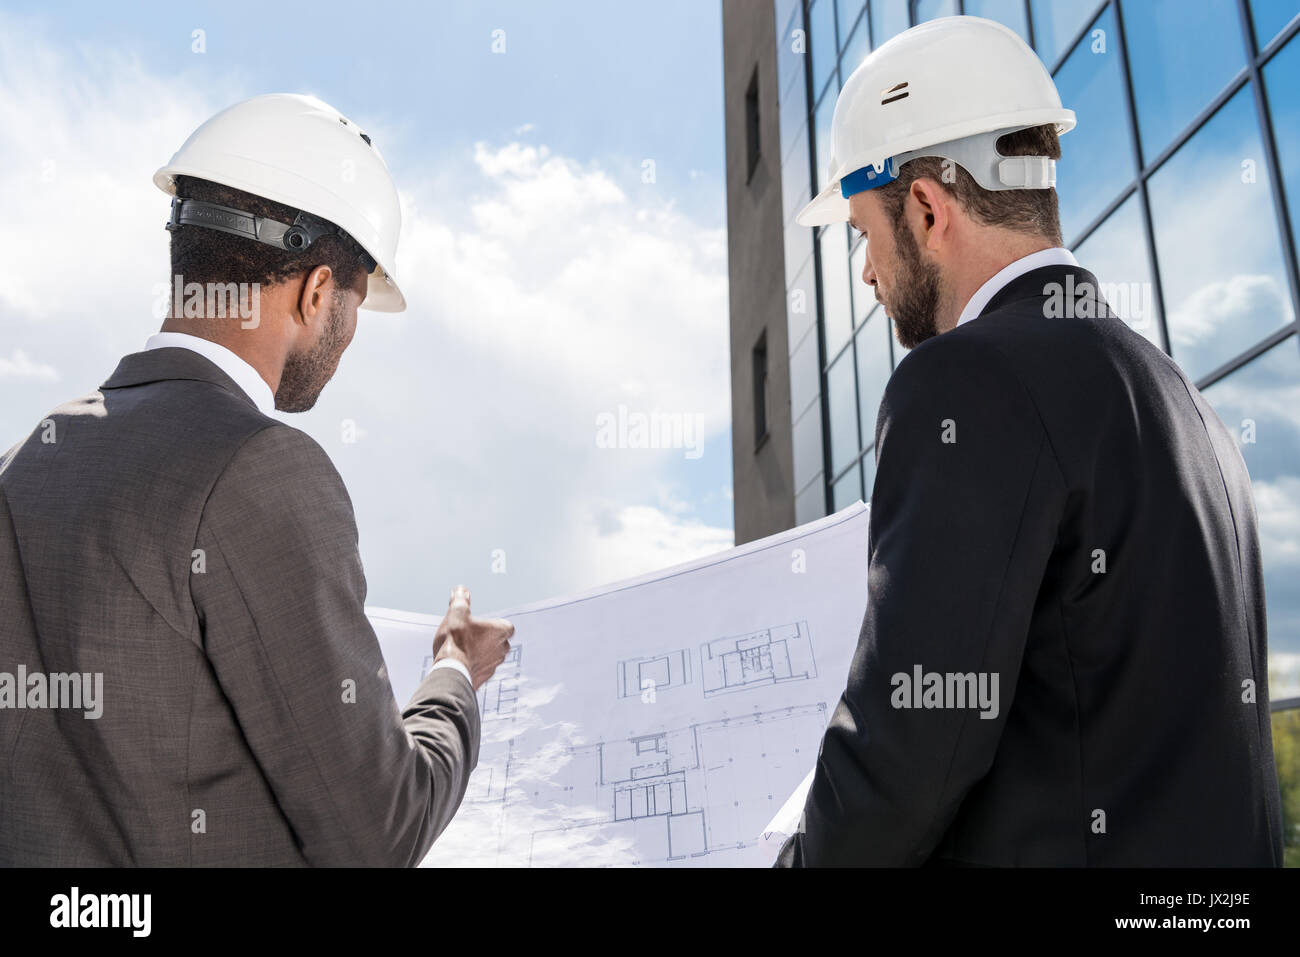 Back view of professional architects in hardhats working with blueprint - Stock Image